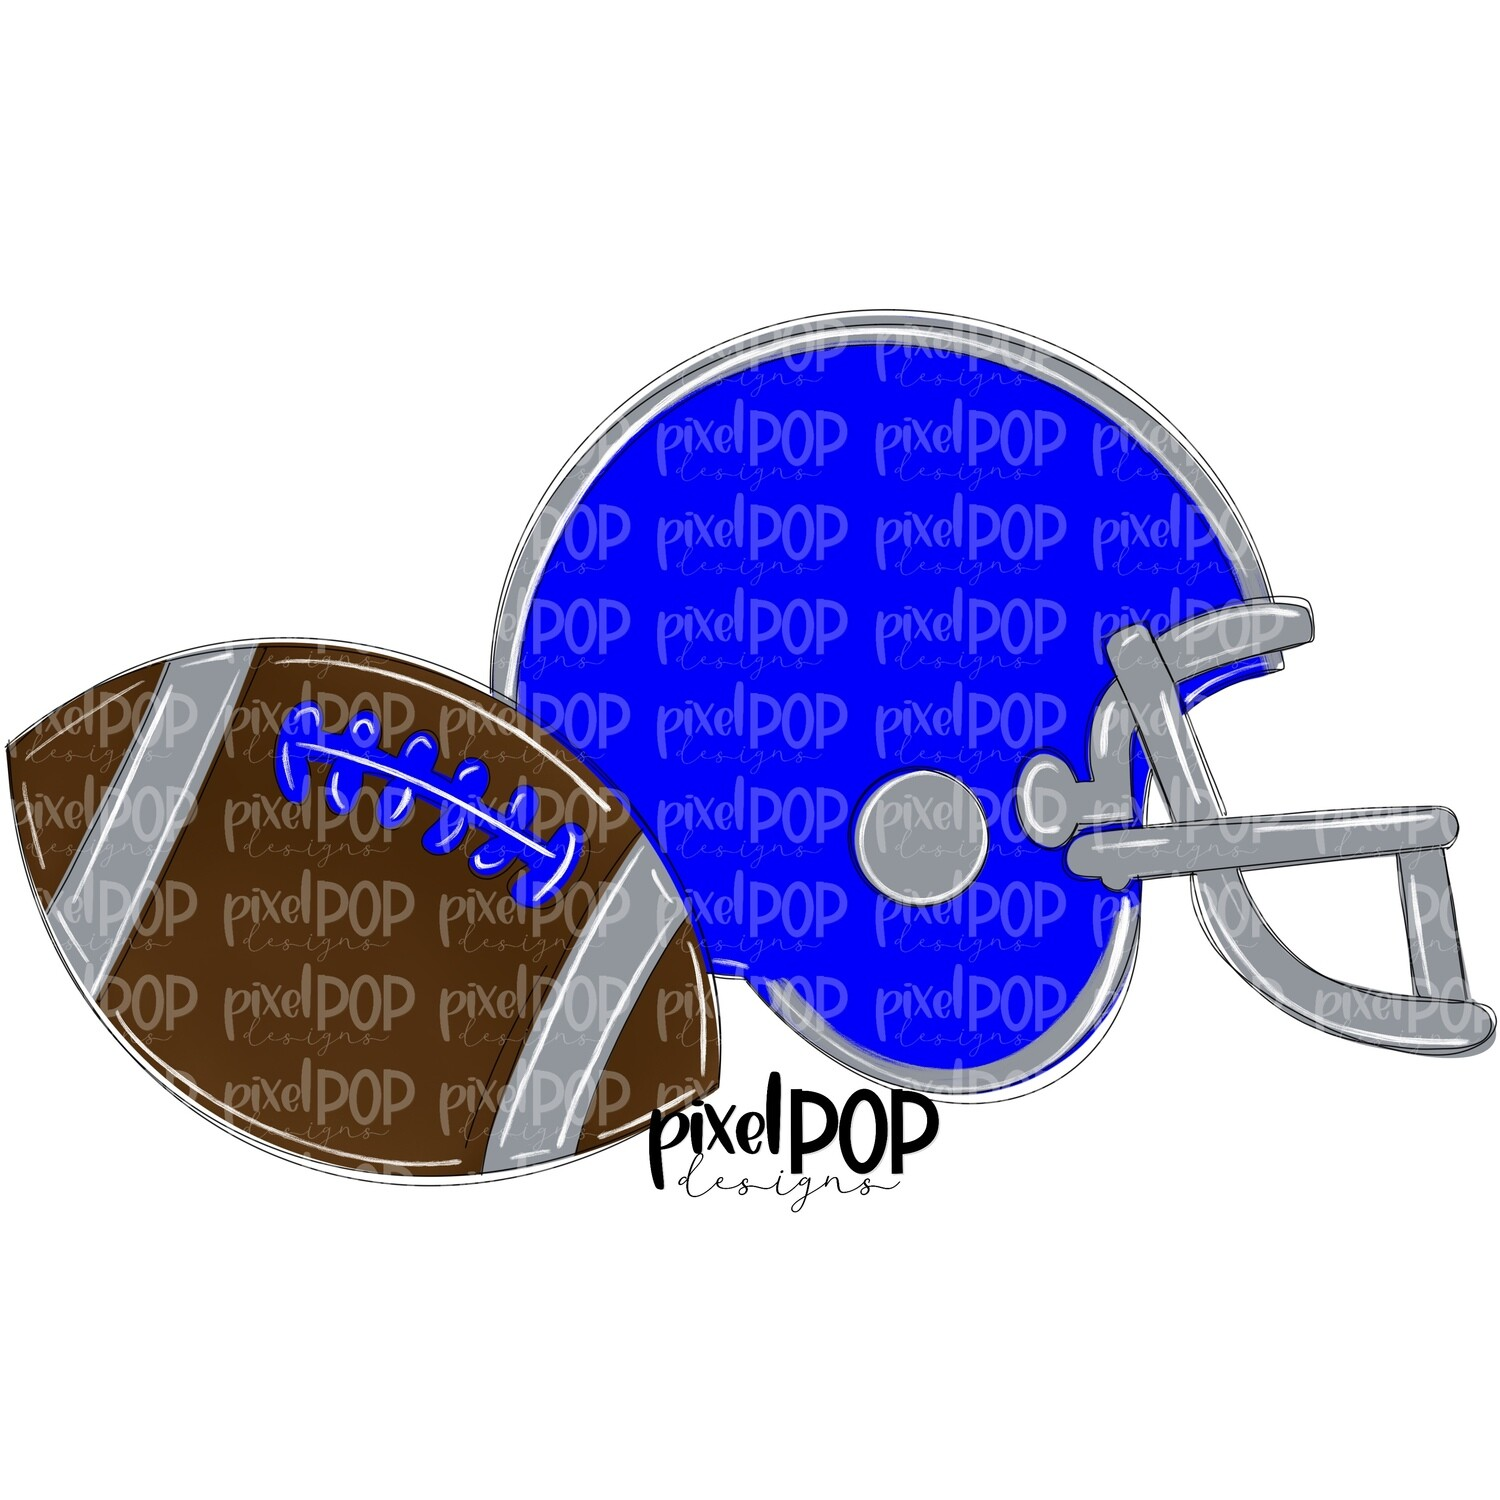 Football and Helmet Blue and Grey Silver PNG   Football   Football Design   Football Art   Football Blank   Sports Art